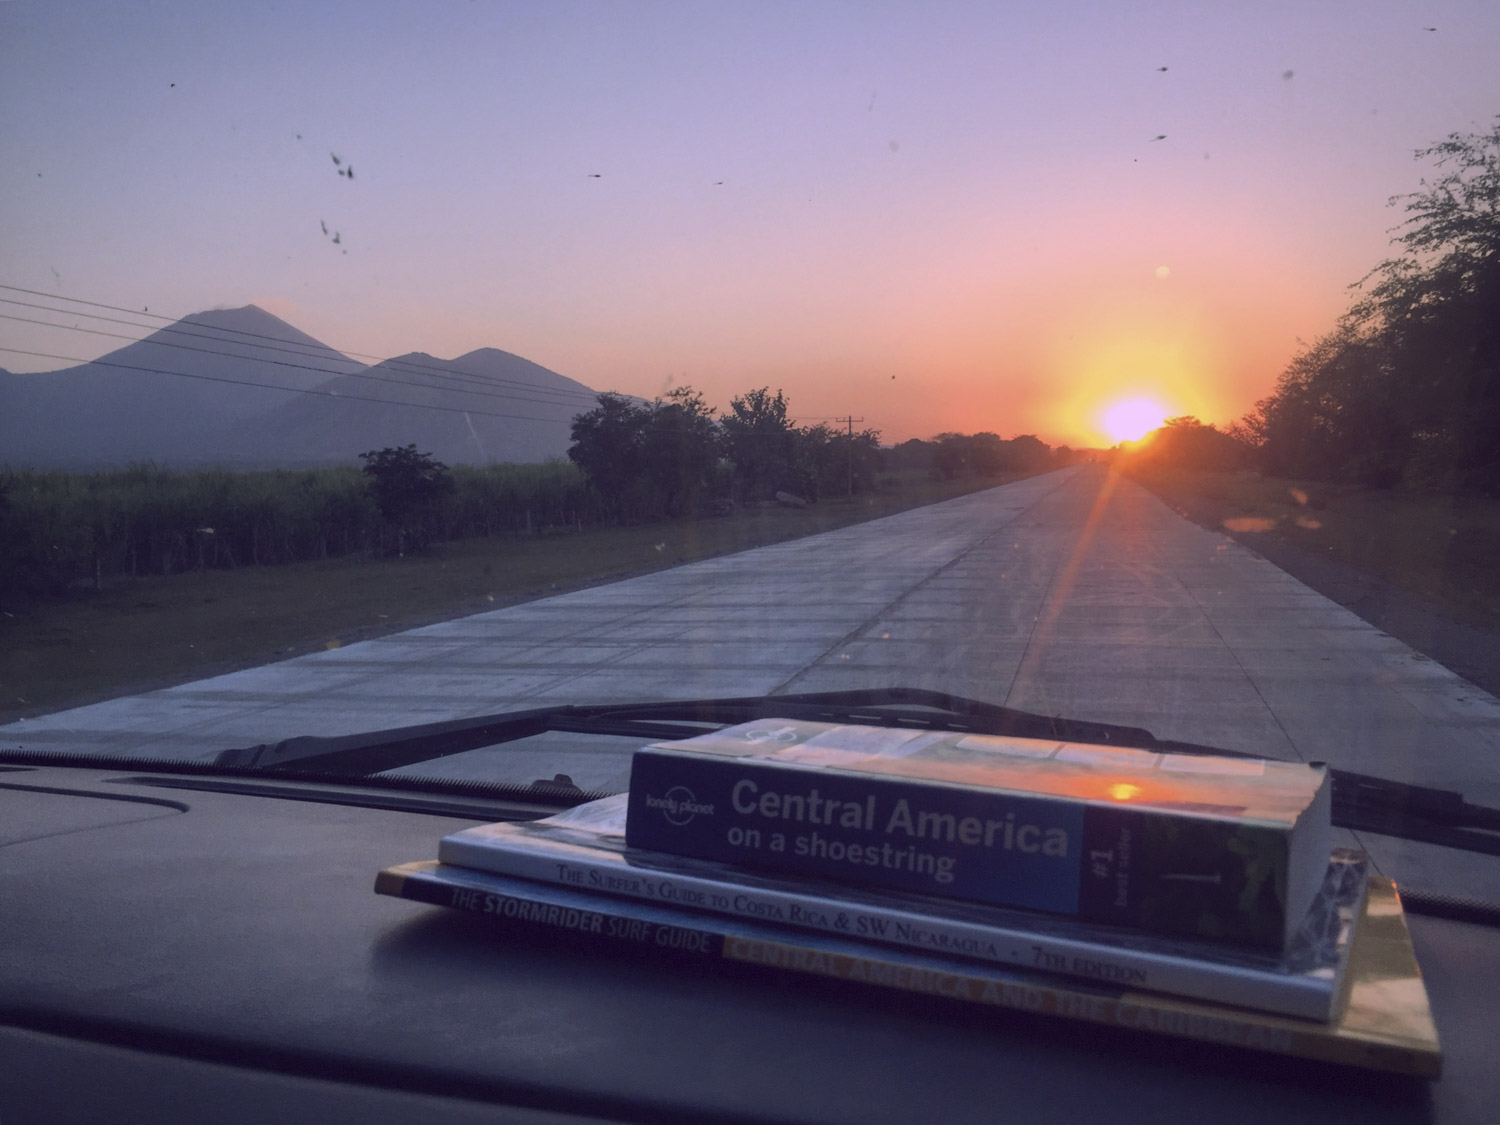 First sunset in Nicaragua as we head South on the highway